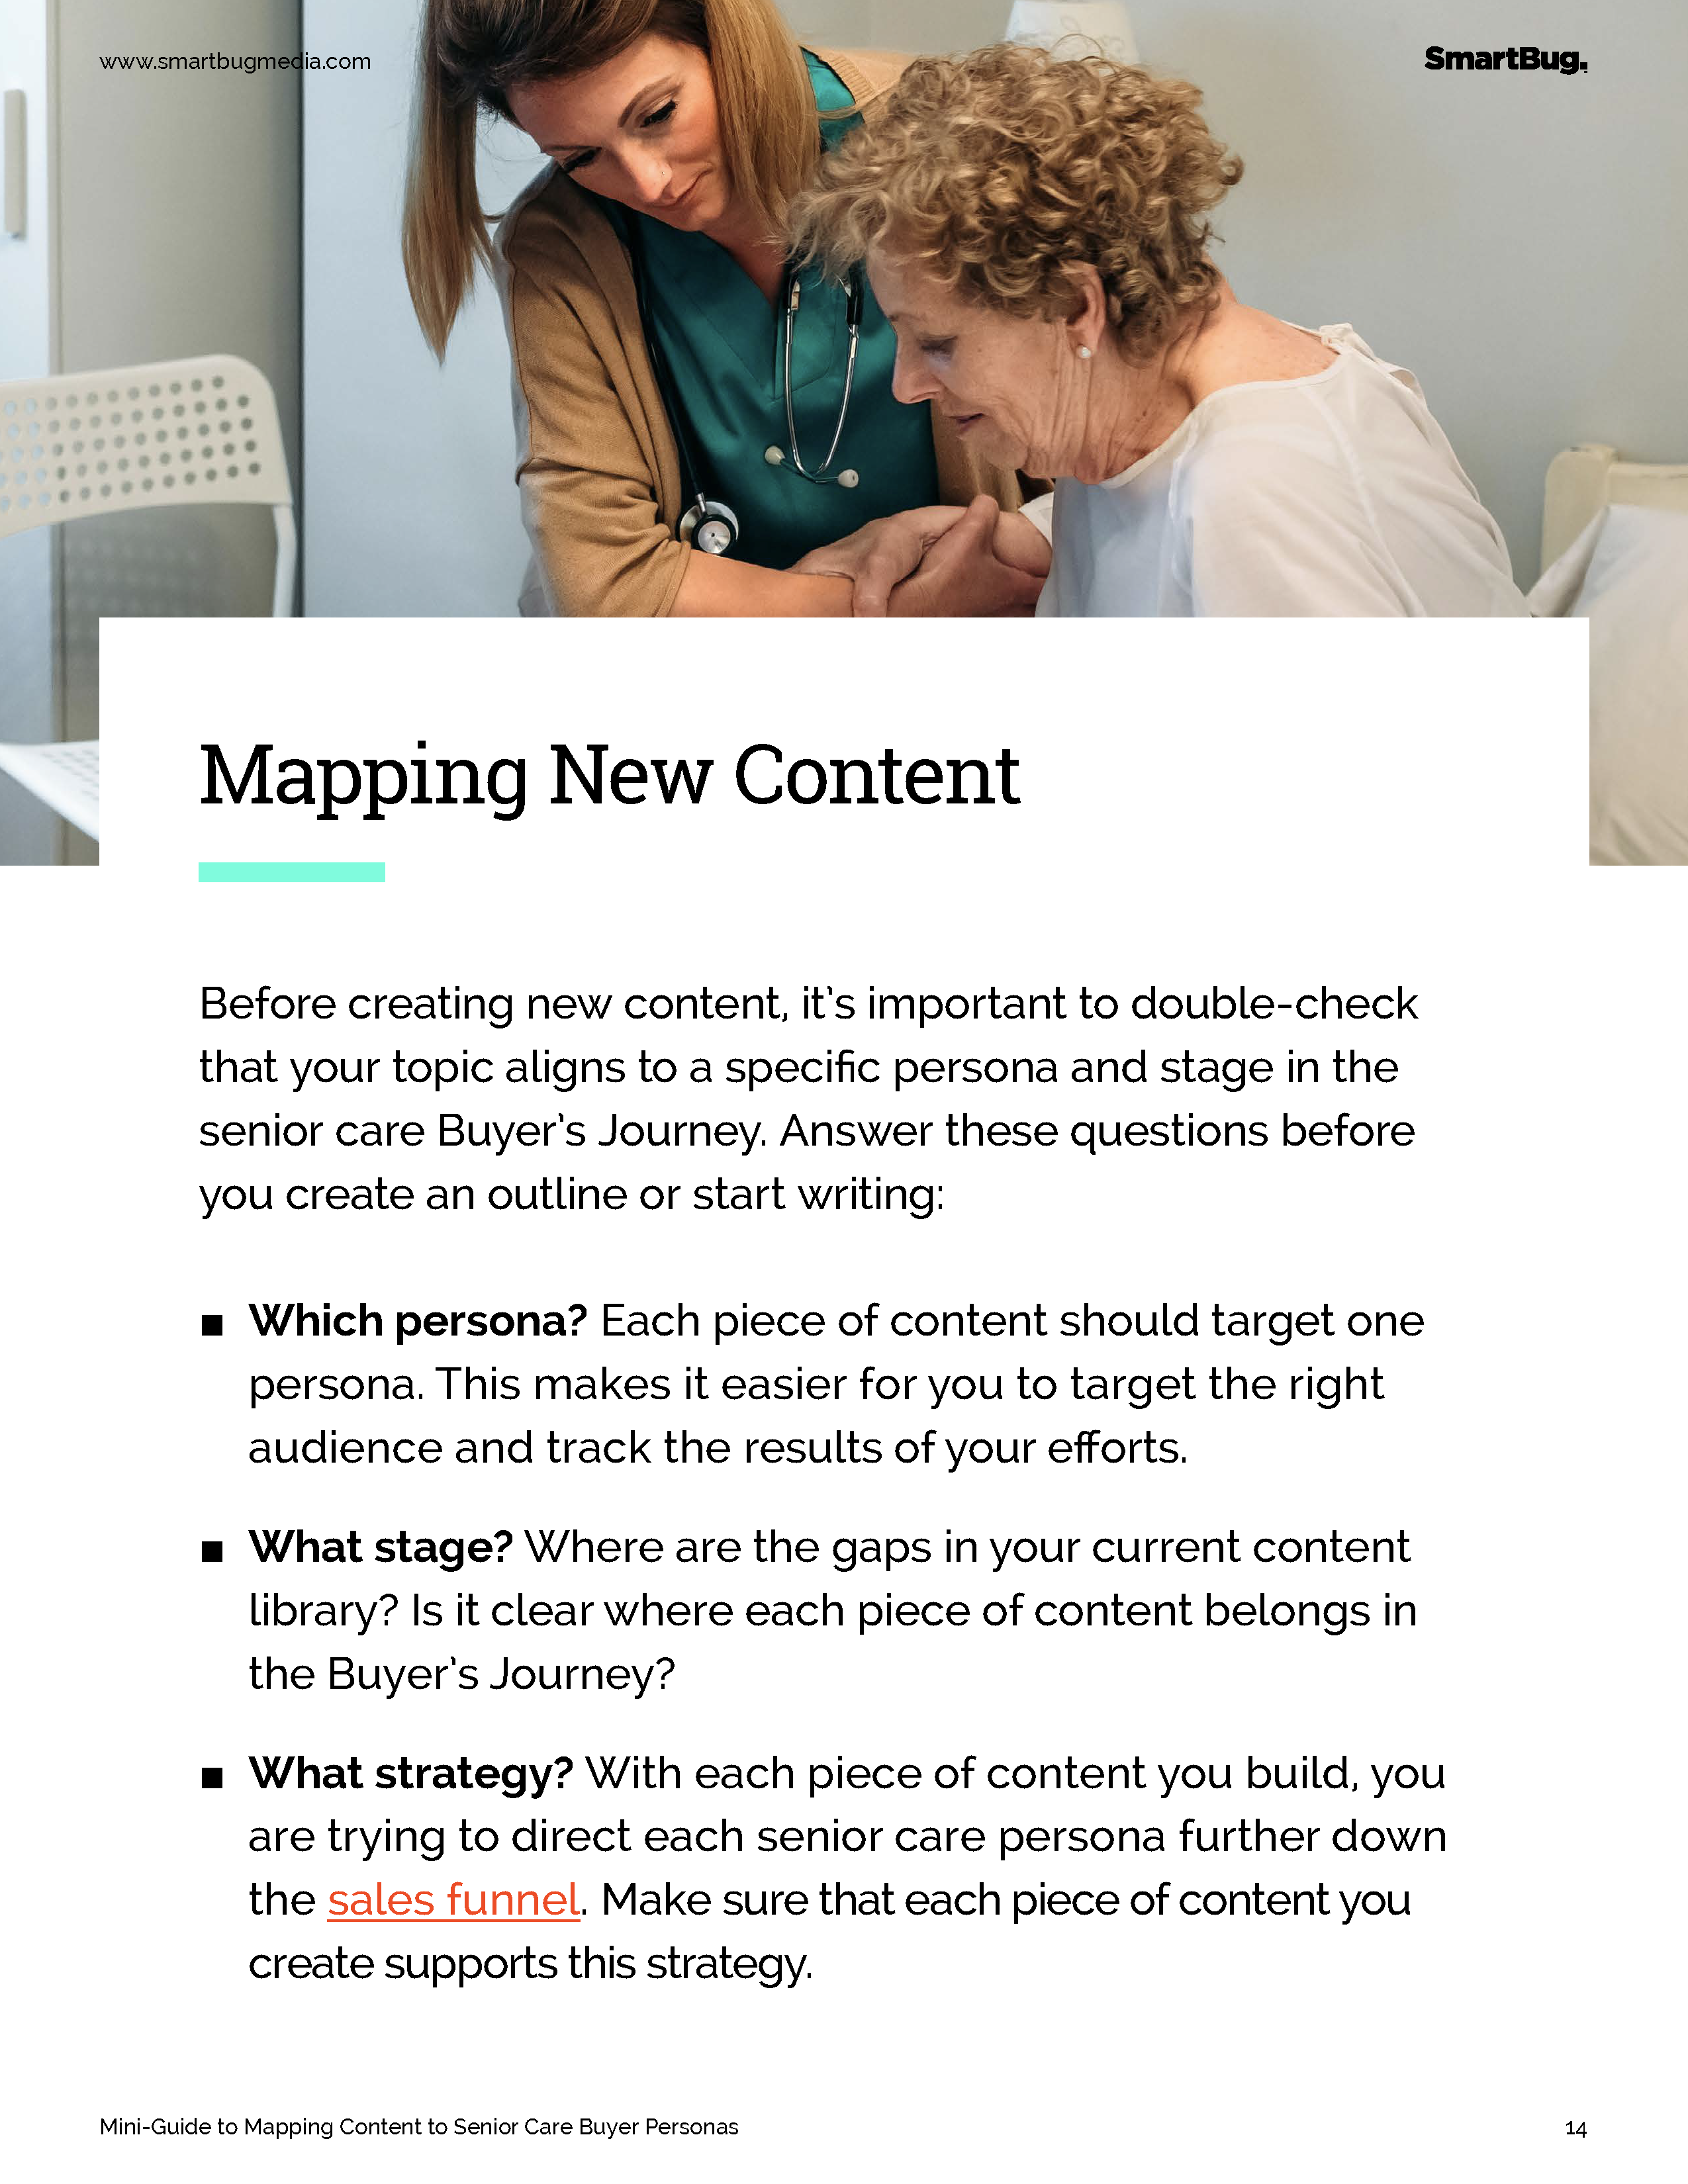 Mini-Guide to Mapping Content to Senior Care Buyer Personas_Page_14